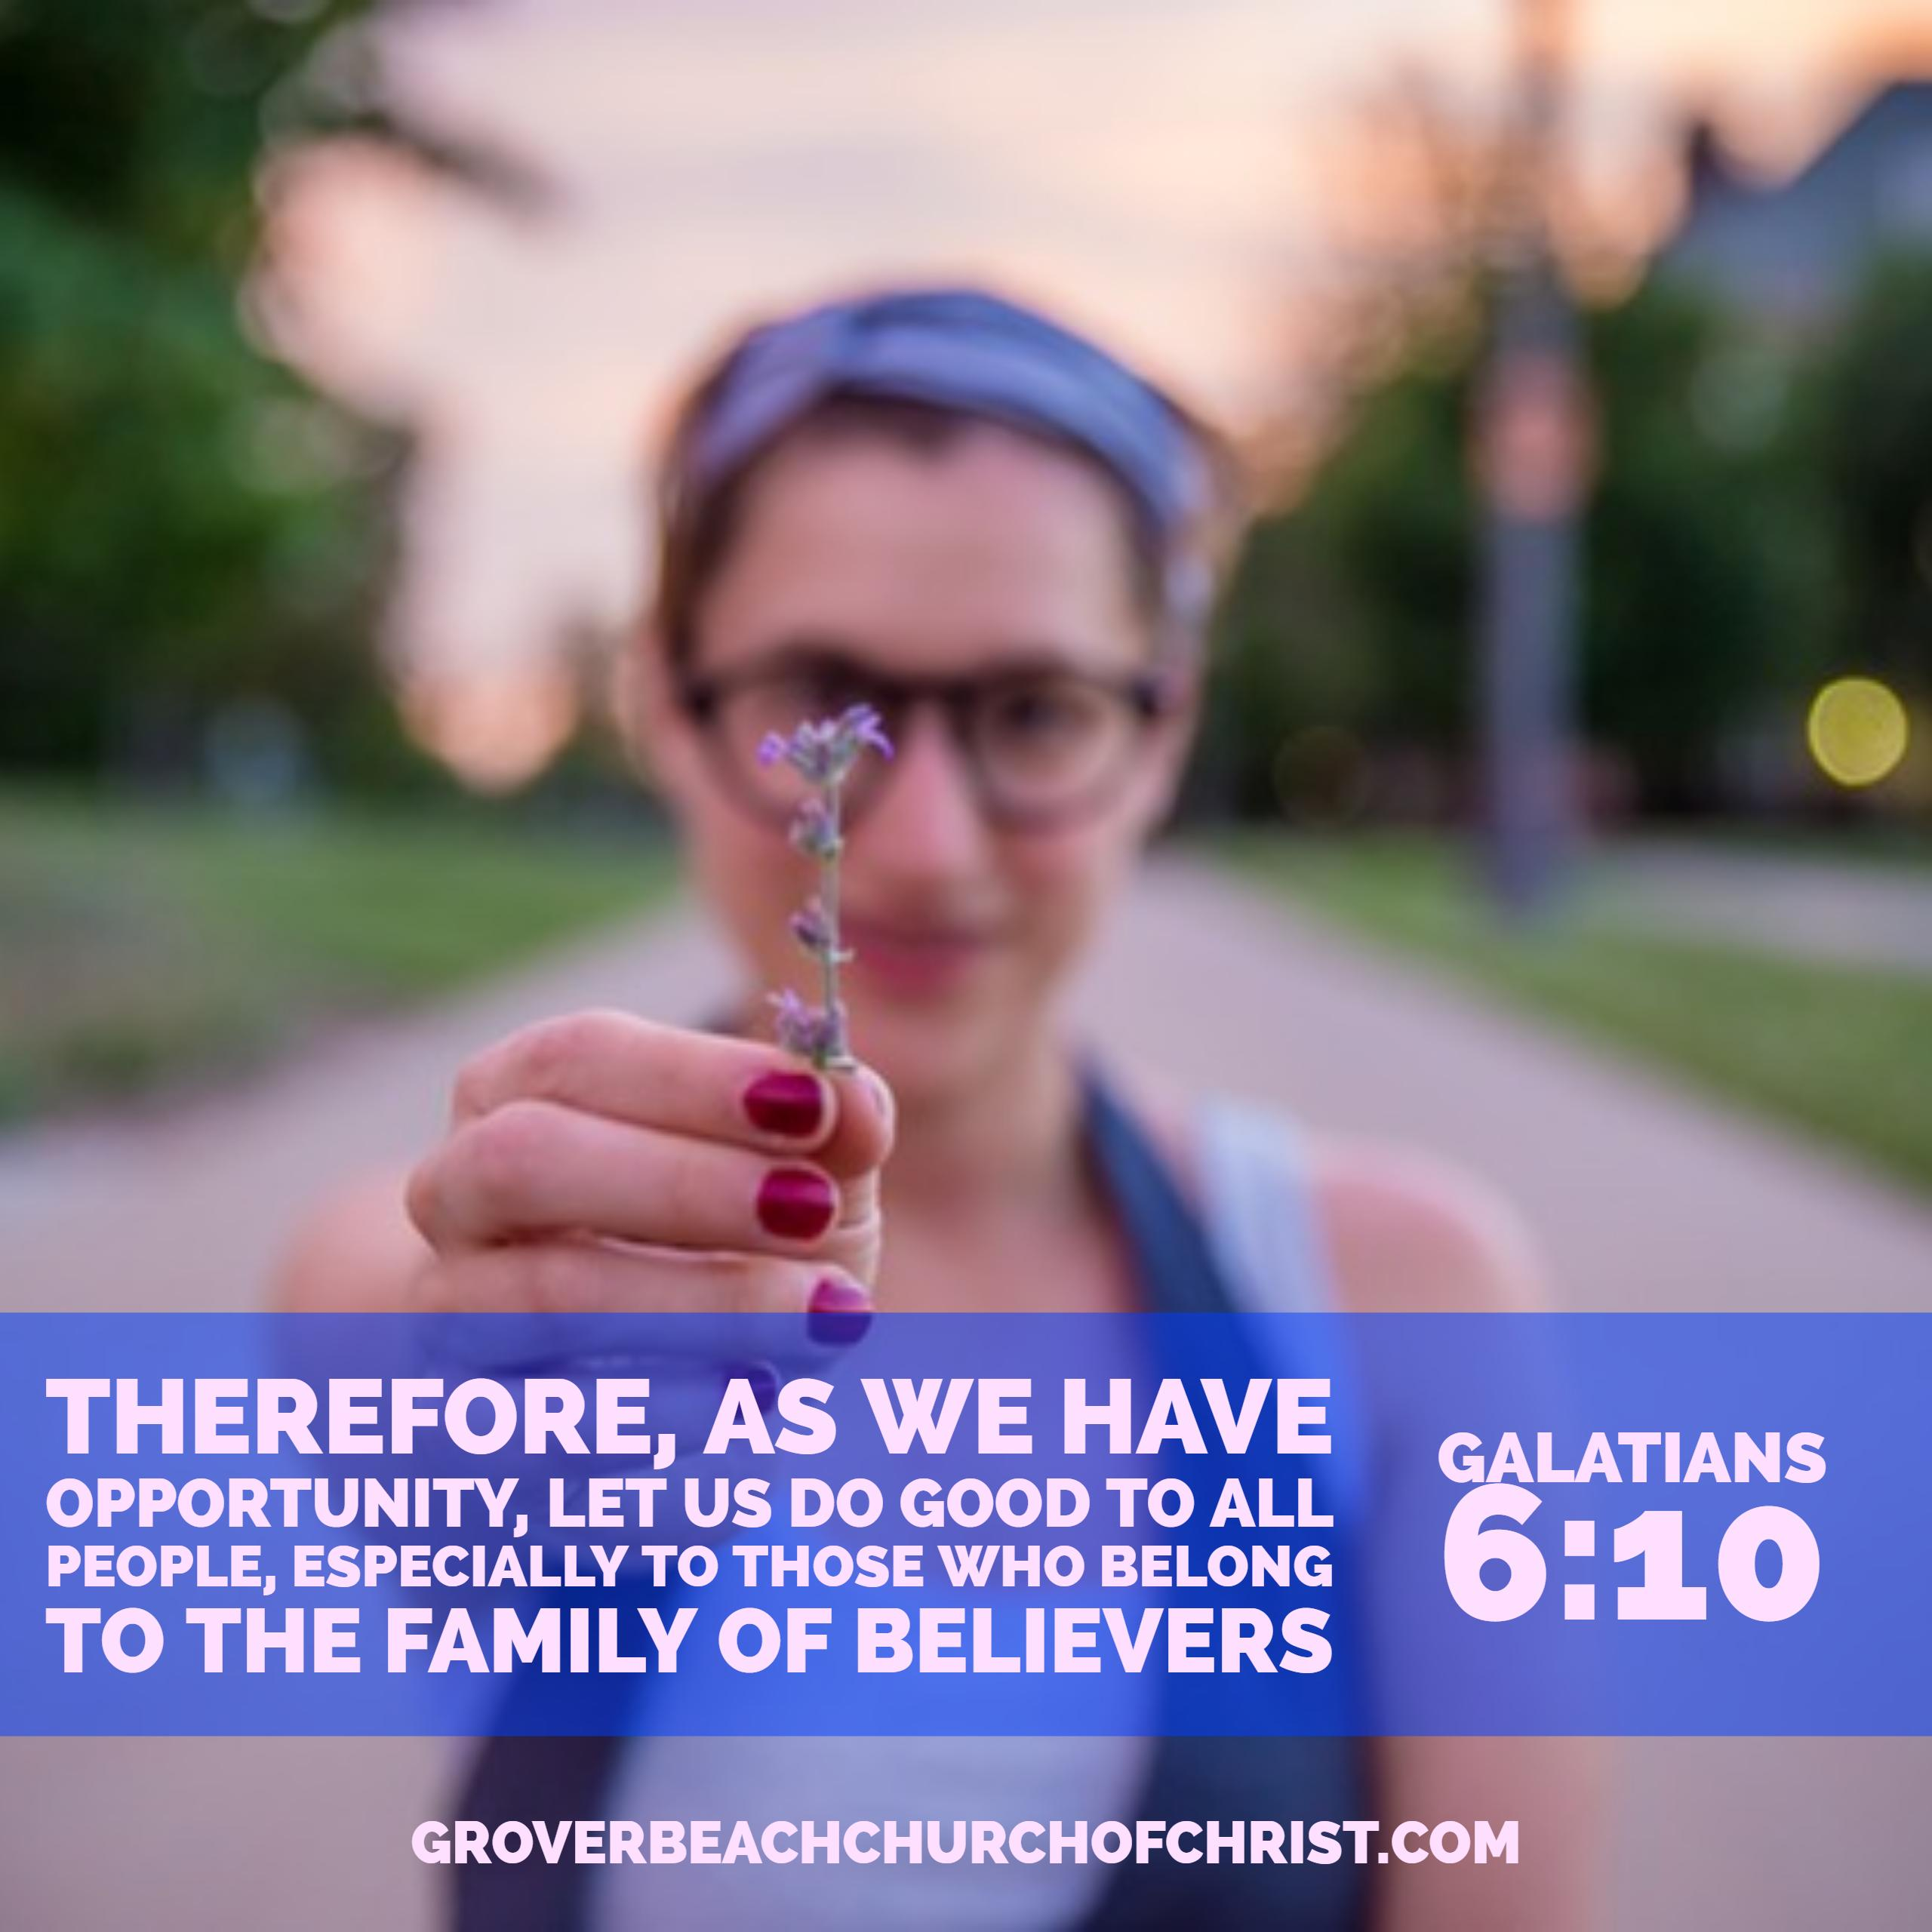 galatians-6-10-therefore-as-we3-have-opportunity